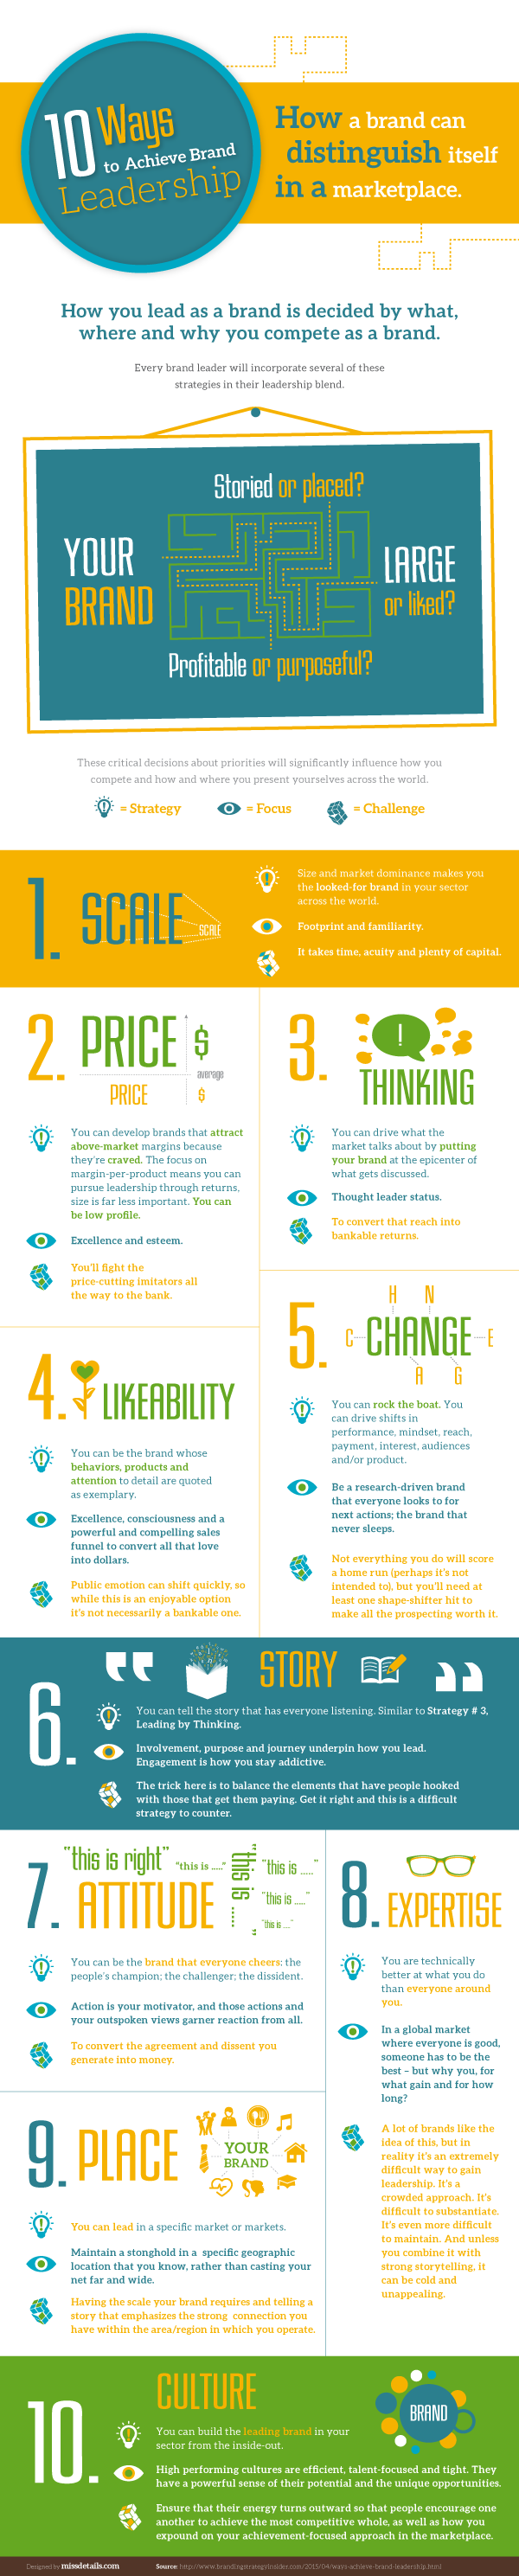 10 Ways To Achieve Brand Leadership - #Infographic